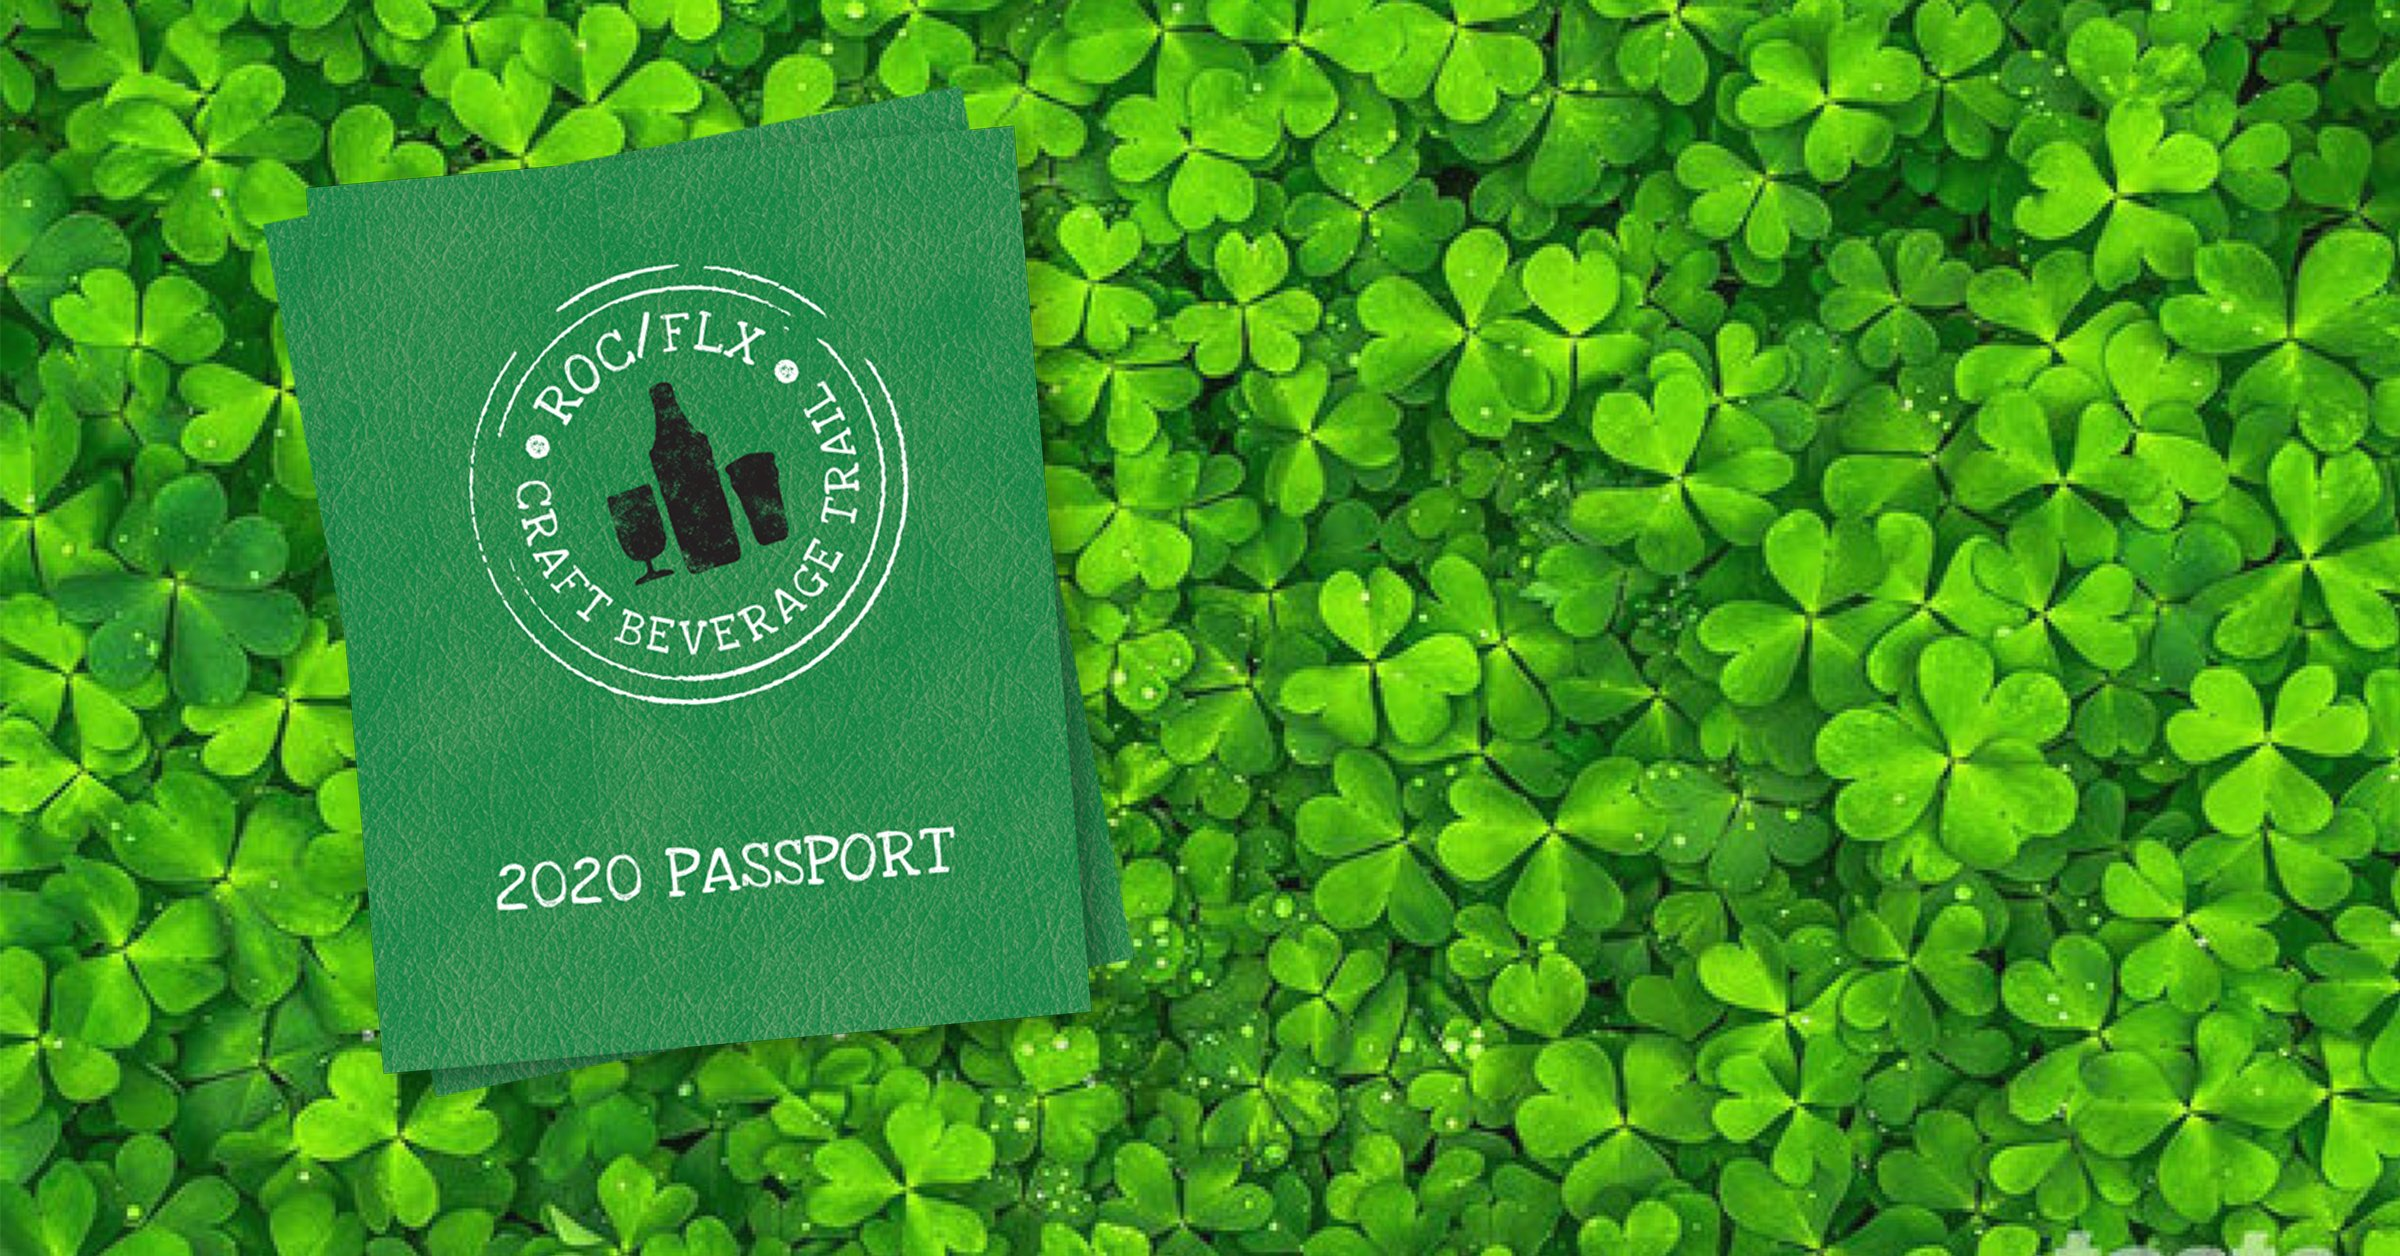 Order the 2020 Passport and start saving